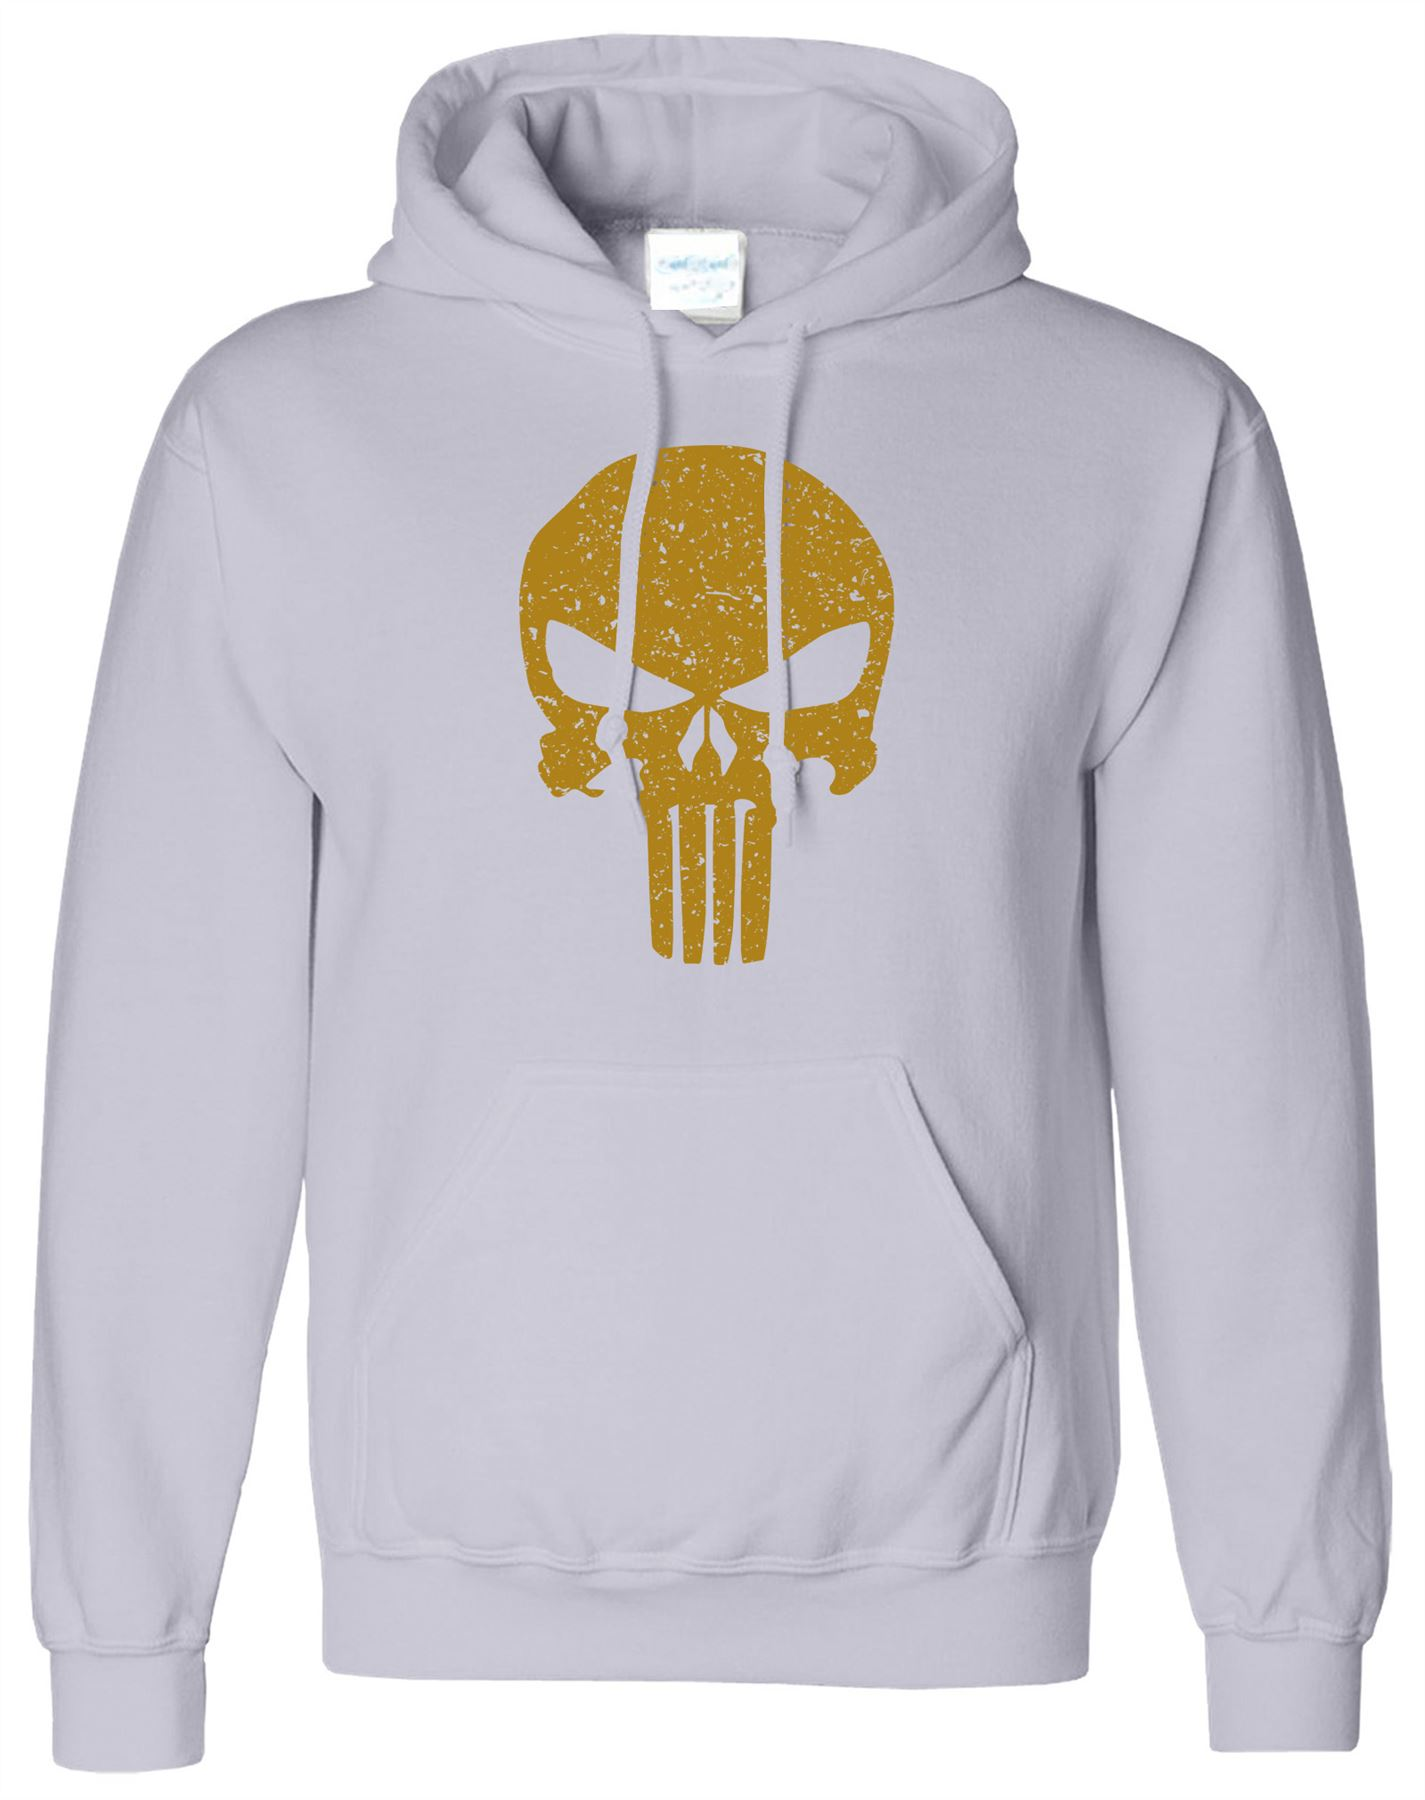 Punisher The Skull Mens Hoodie Bodybuilding Training Workout Pullover Top Hoody